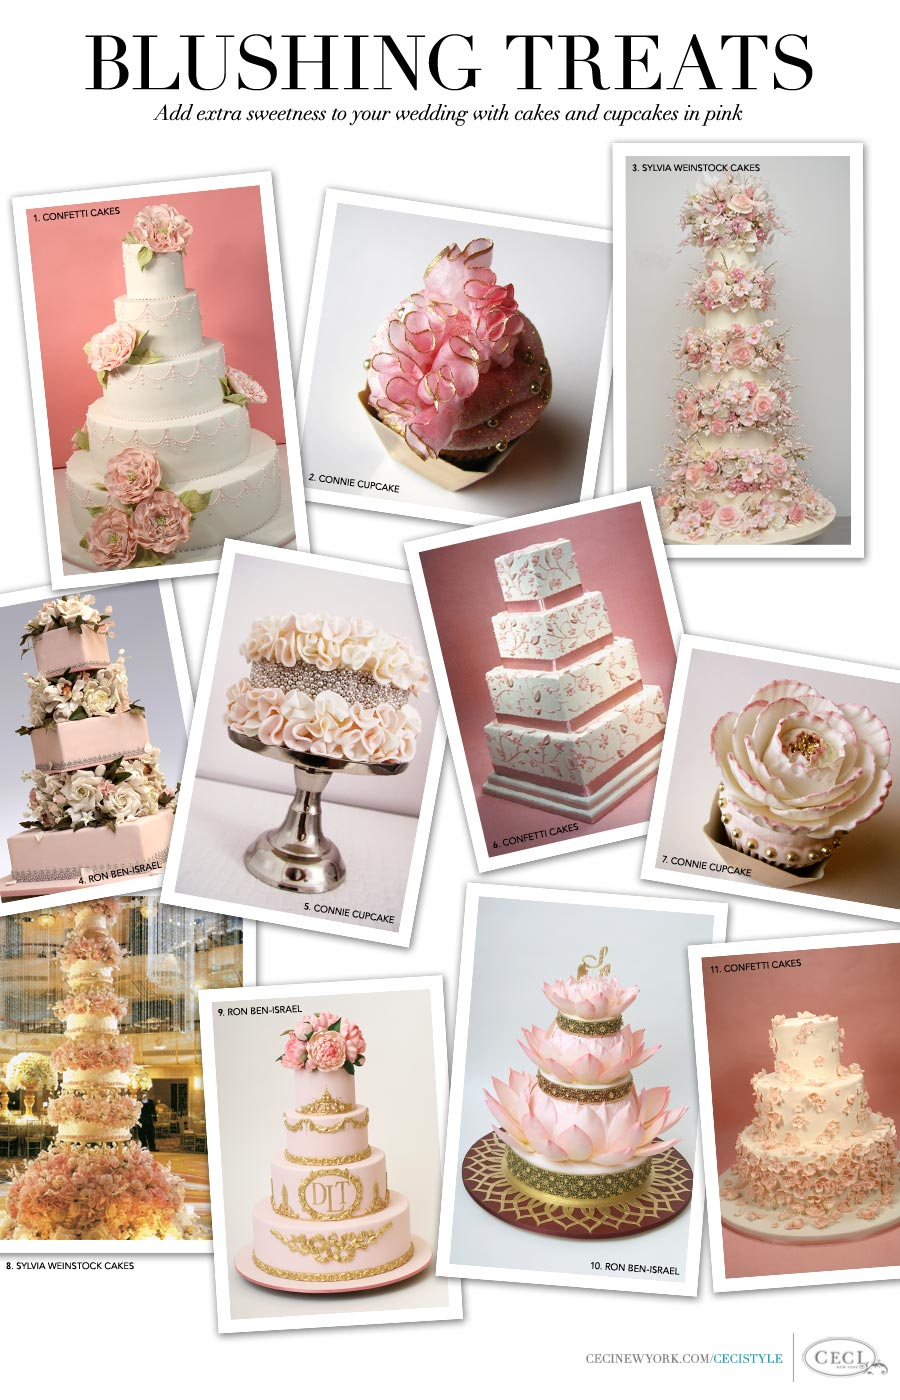 Blushing Treats - Add extra sweetness to your wedding with cakes and desserts in pink